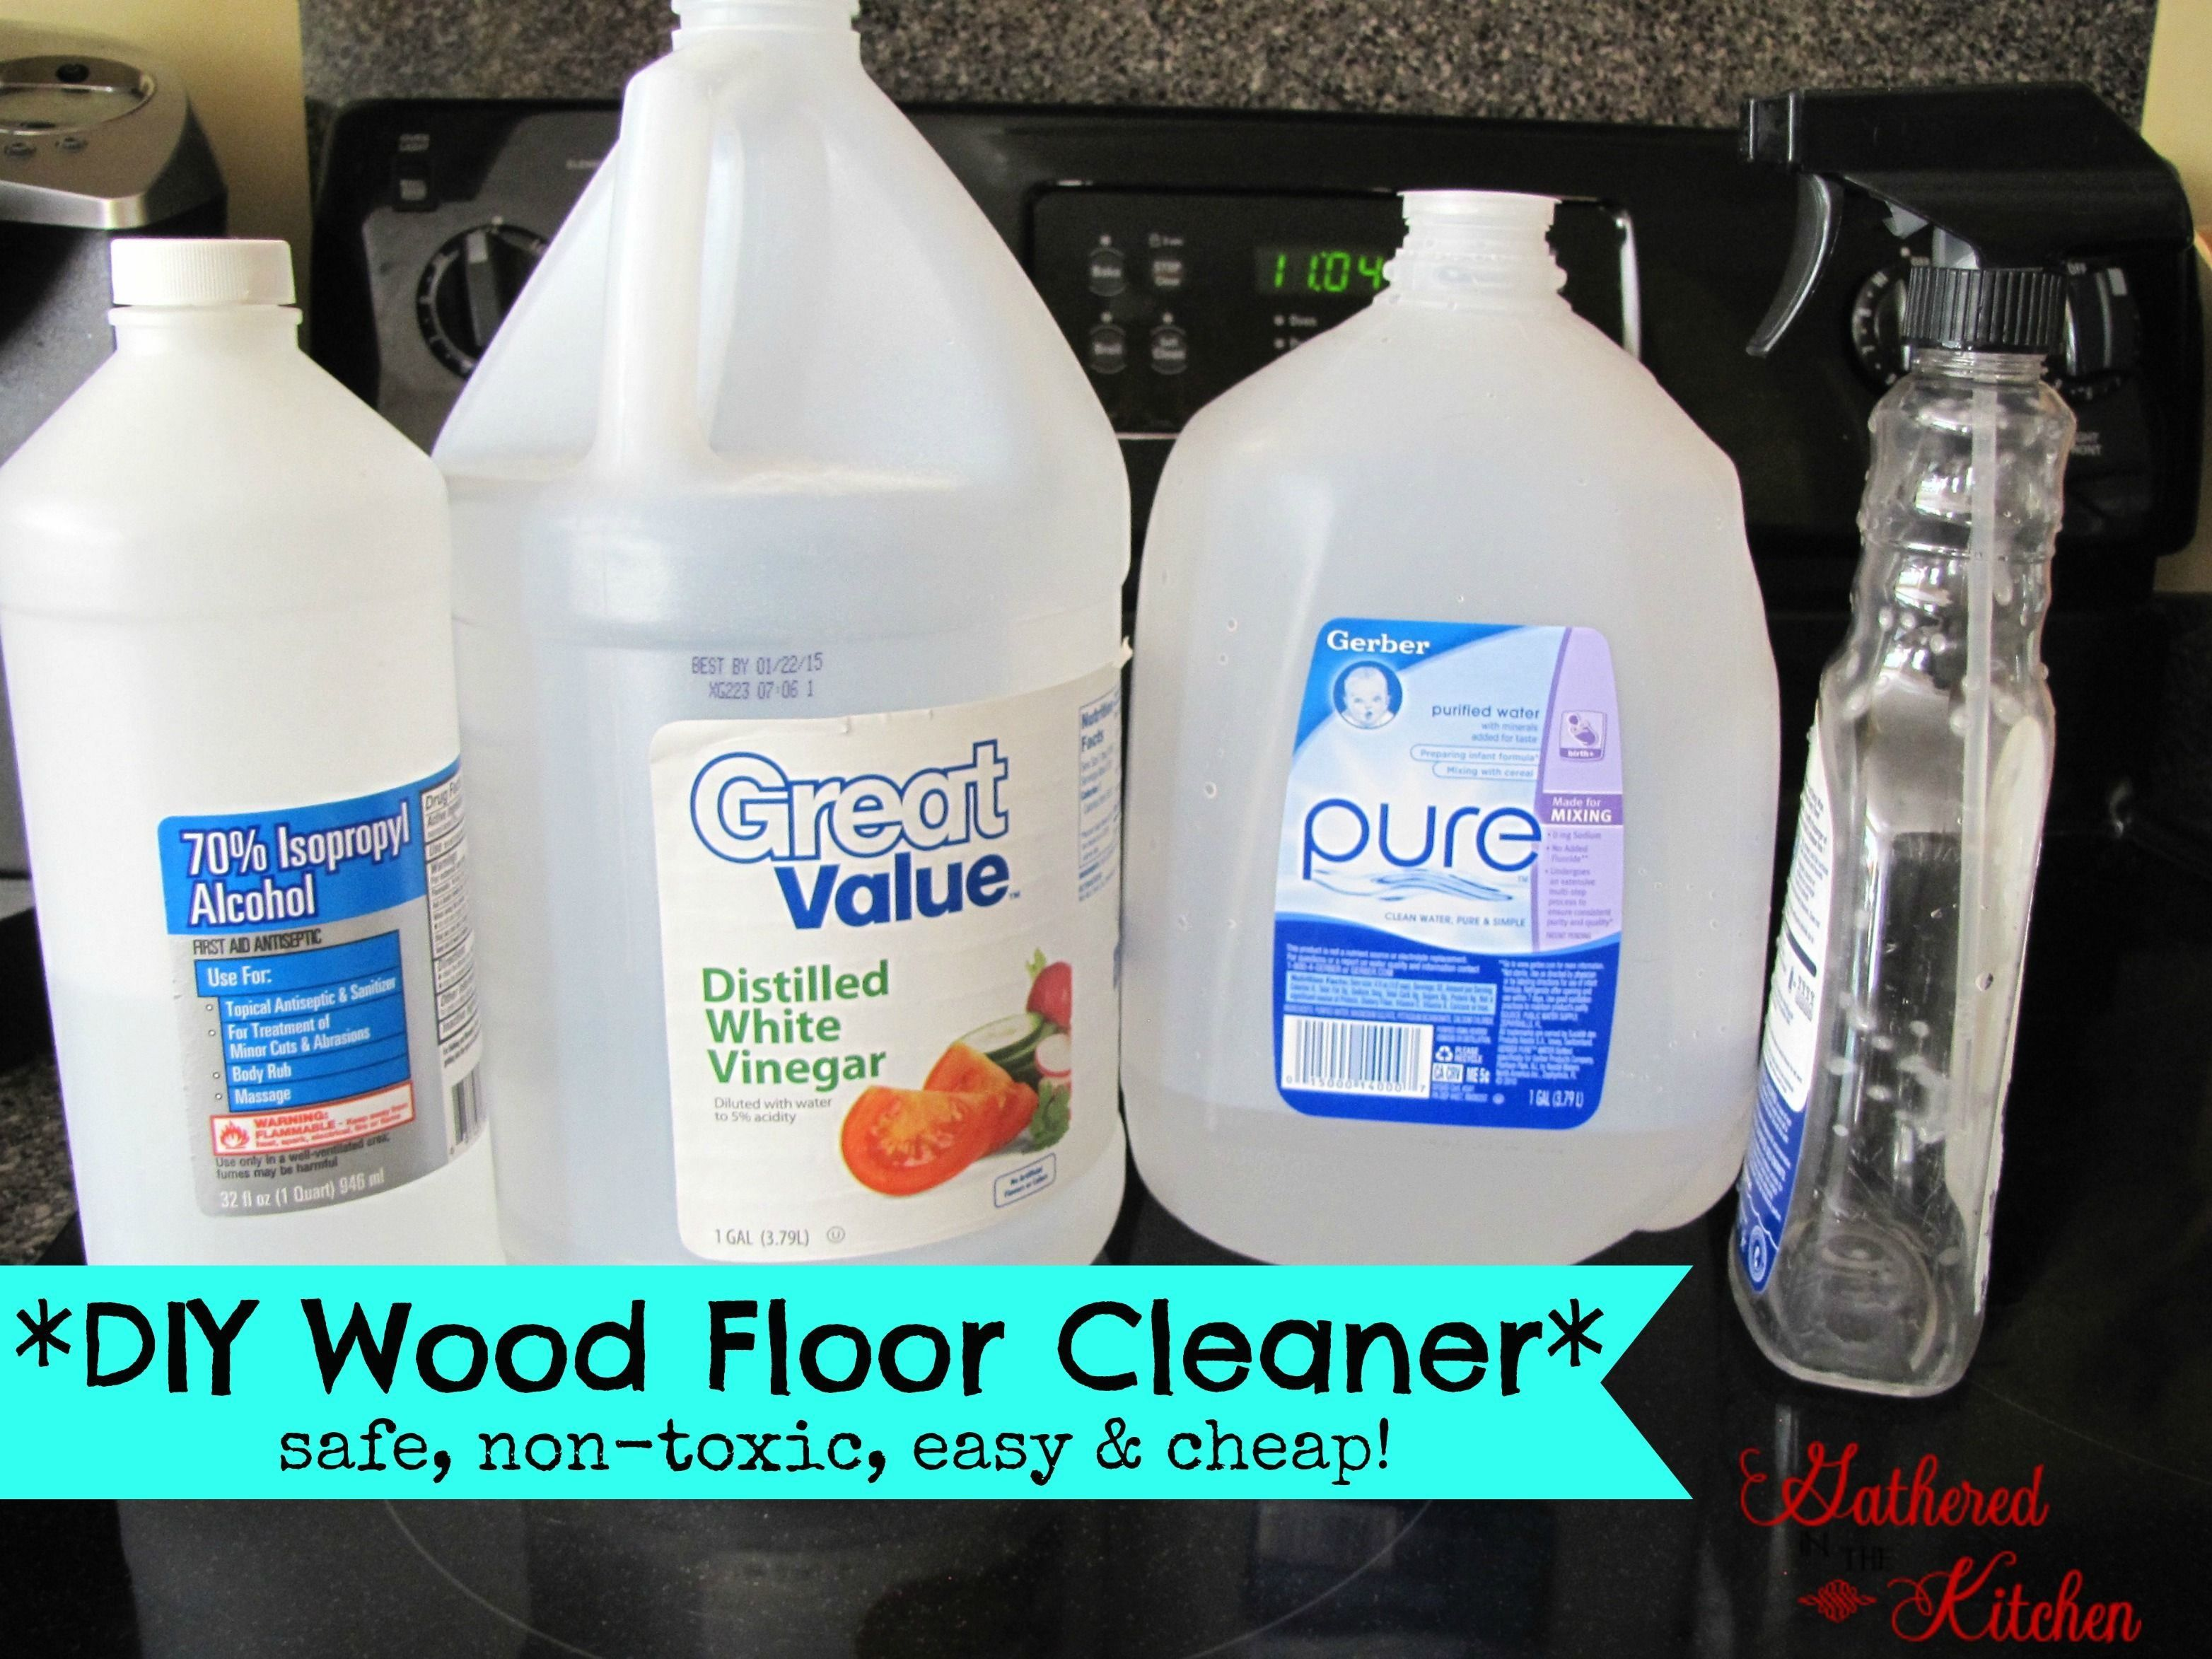 Diy Wood Floor Cleaner Safe Non Toxic Easy And Cheap 1000 In 2020 Diy Wood Floor Cleaner Diy Wood Floors Wood Floor Cleaner